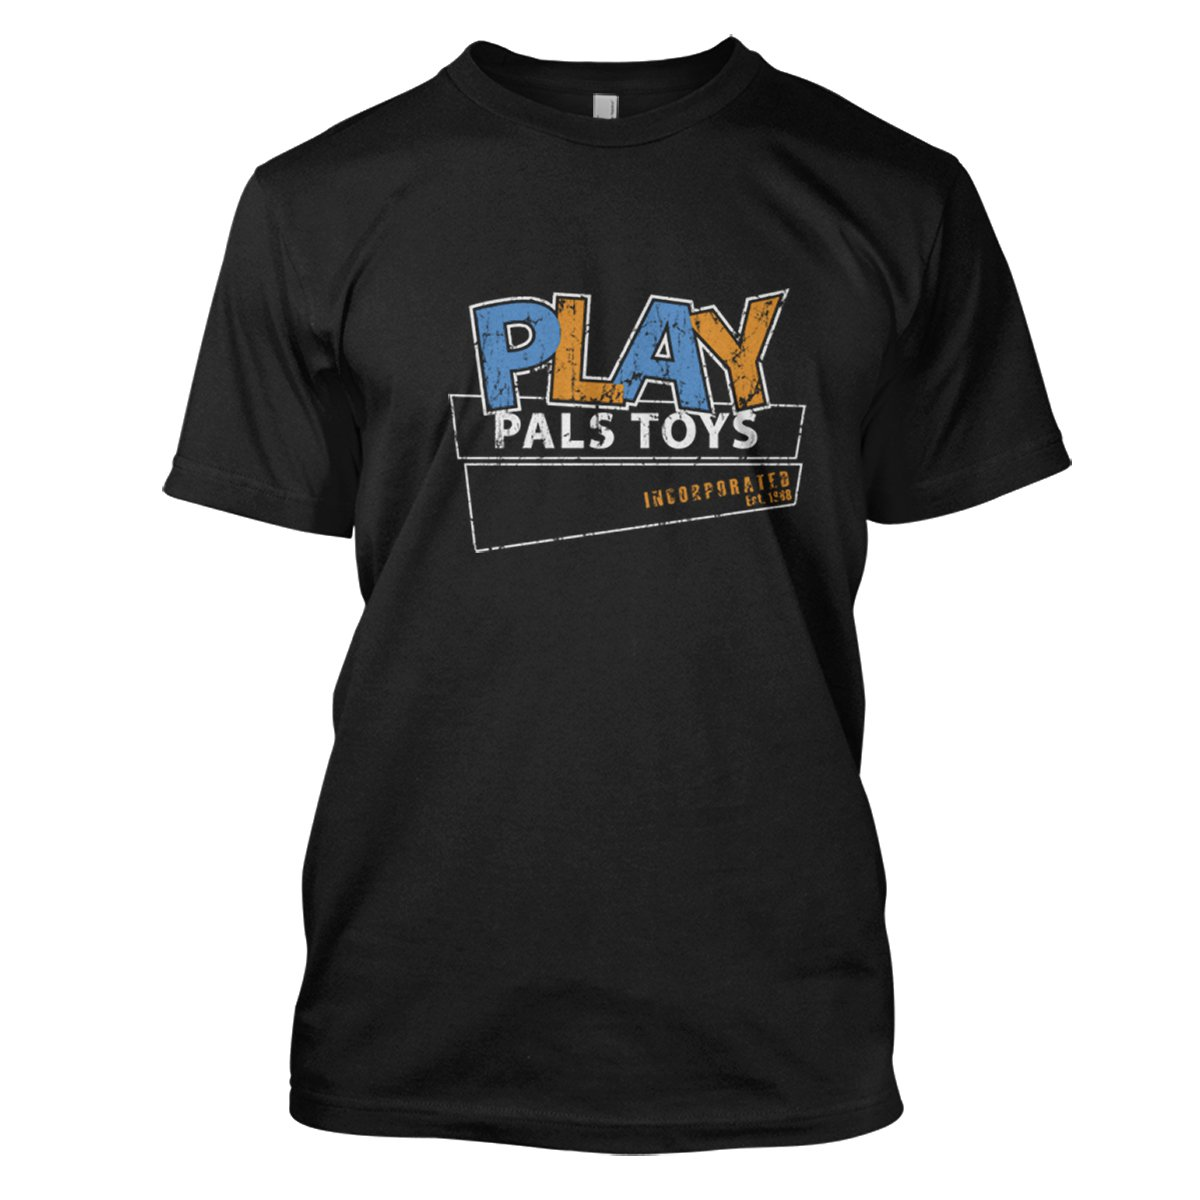 Childs Play: Play Pals Toys Mens Movie T-Shirt Large Black